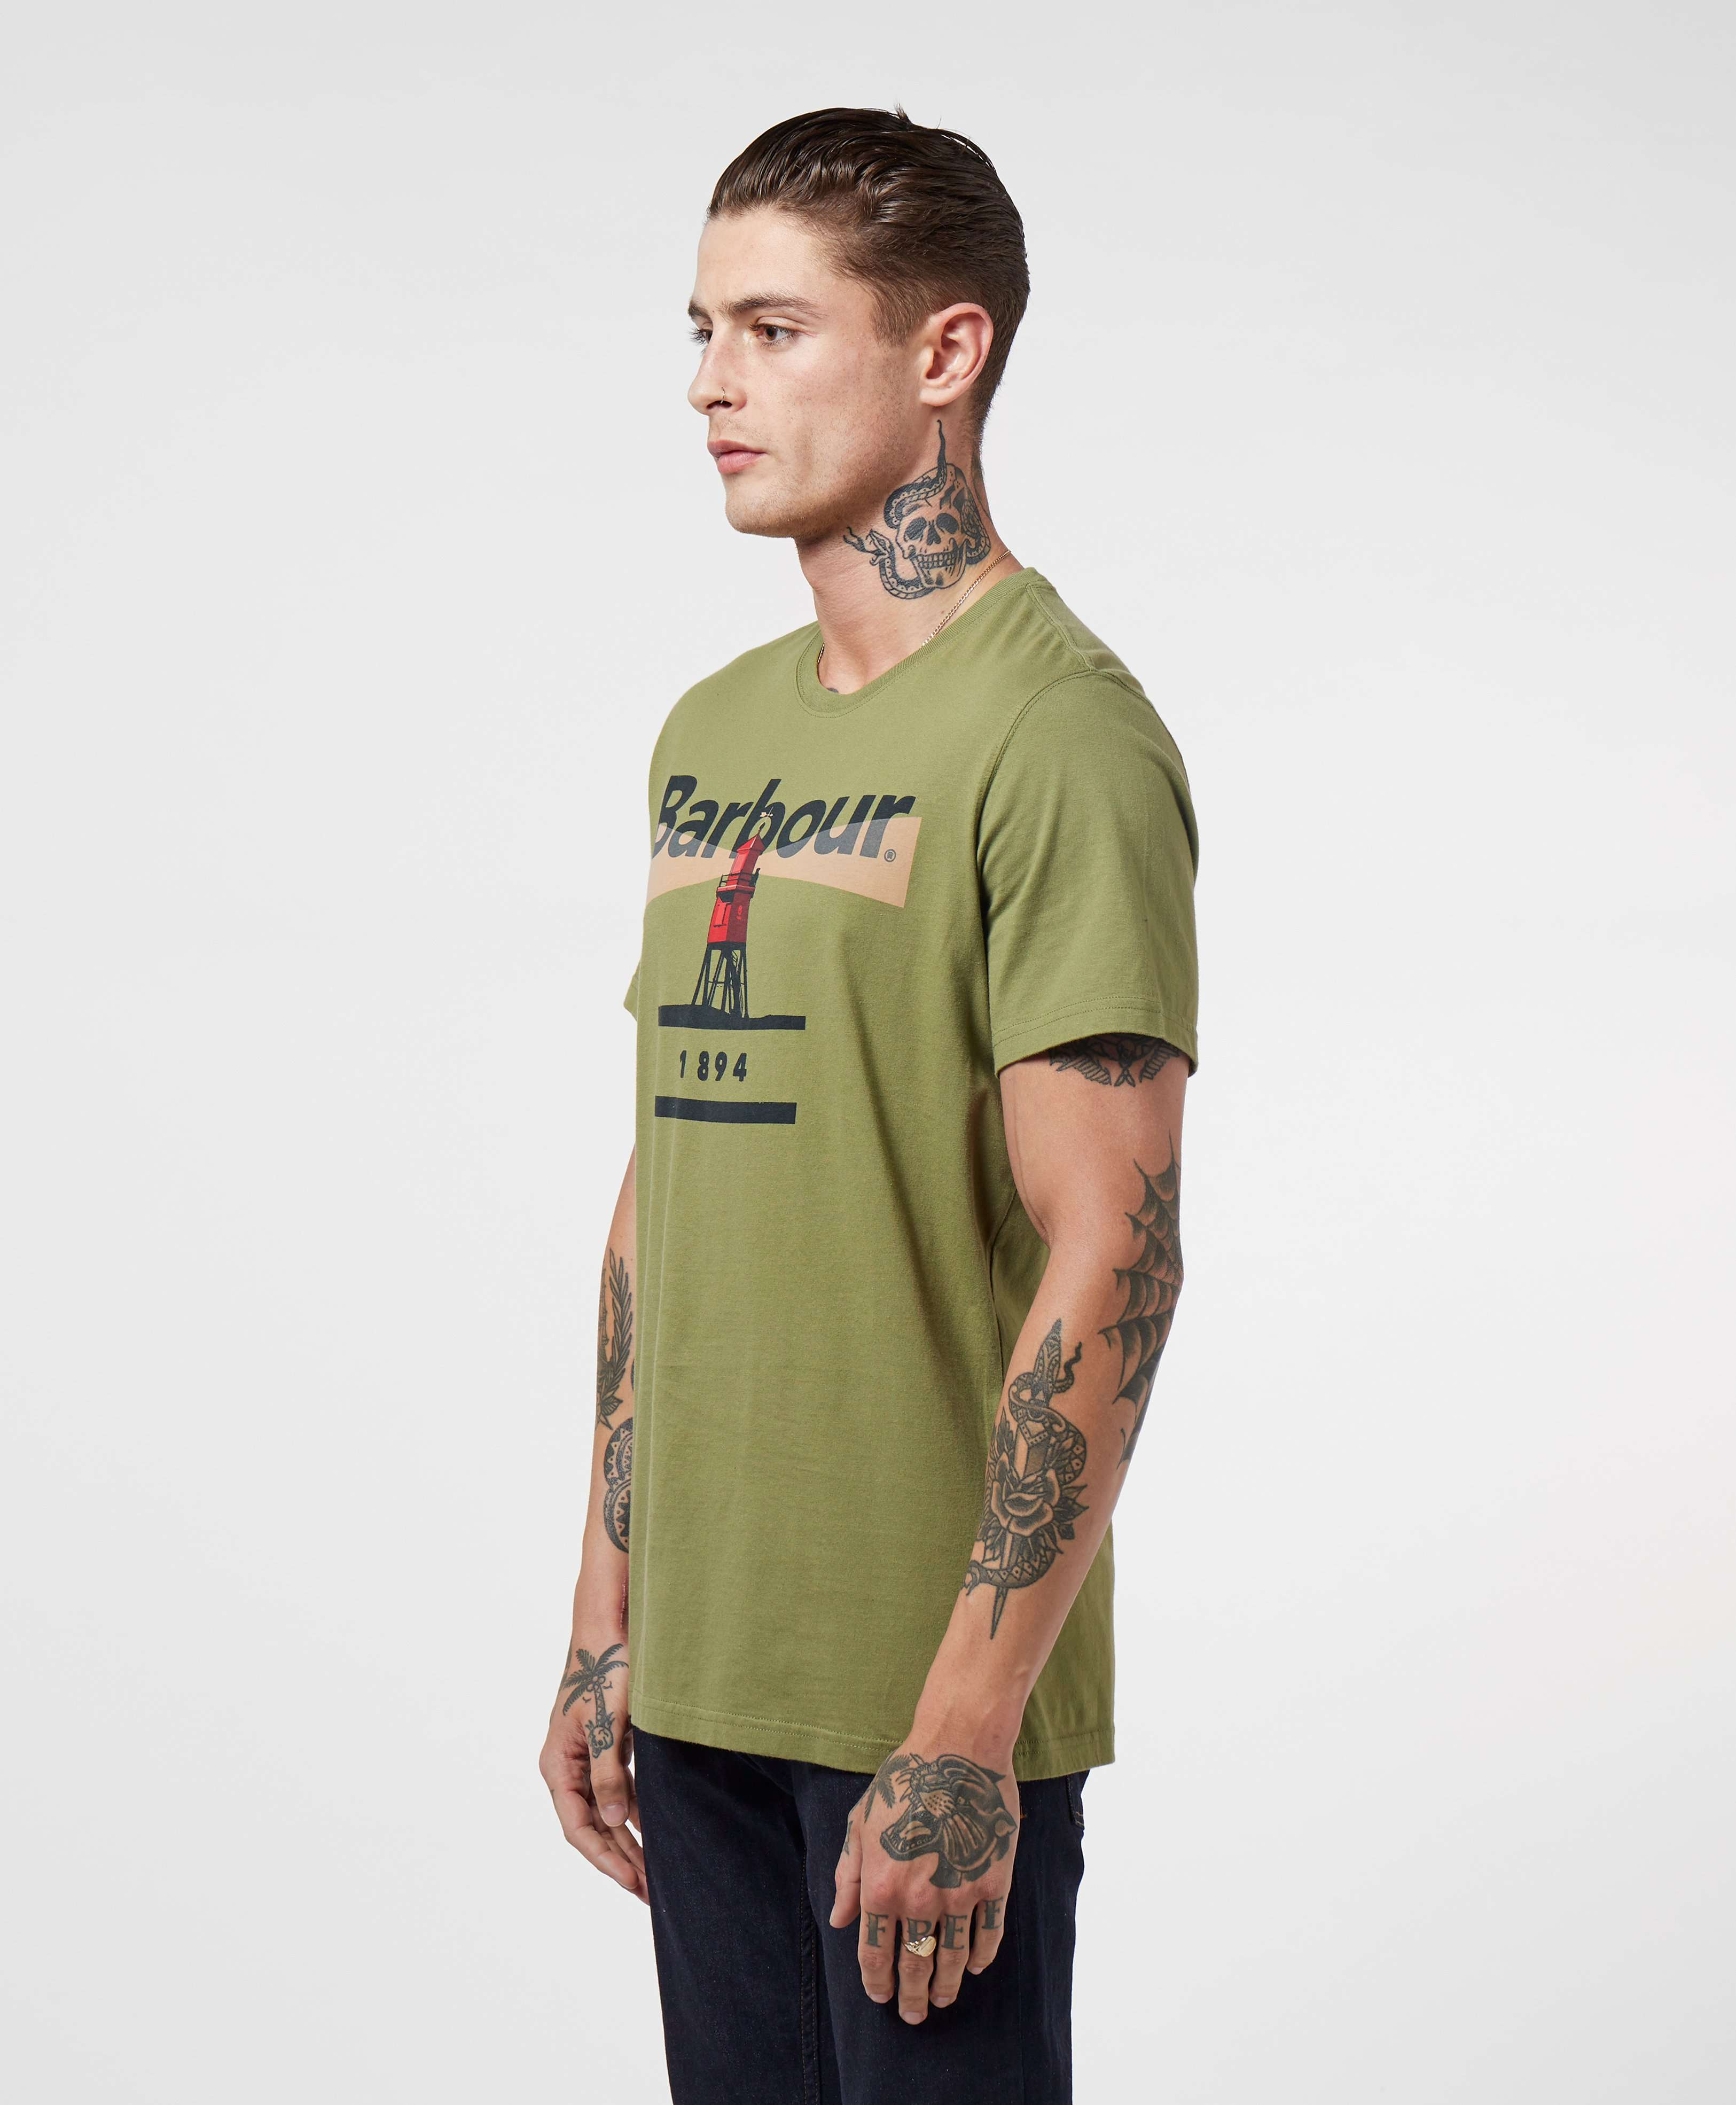 Barbour Beacon Heritage 94 Short Sleeve T-Shirt